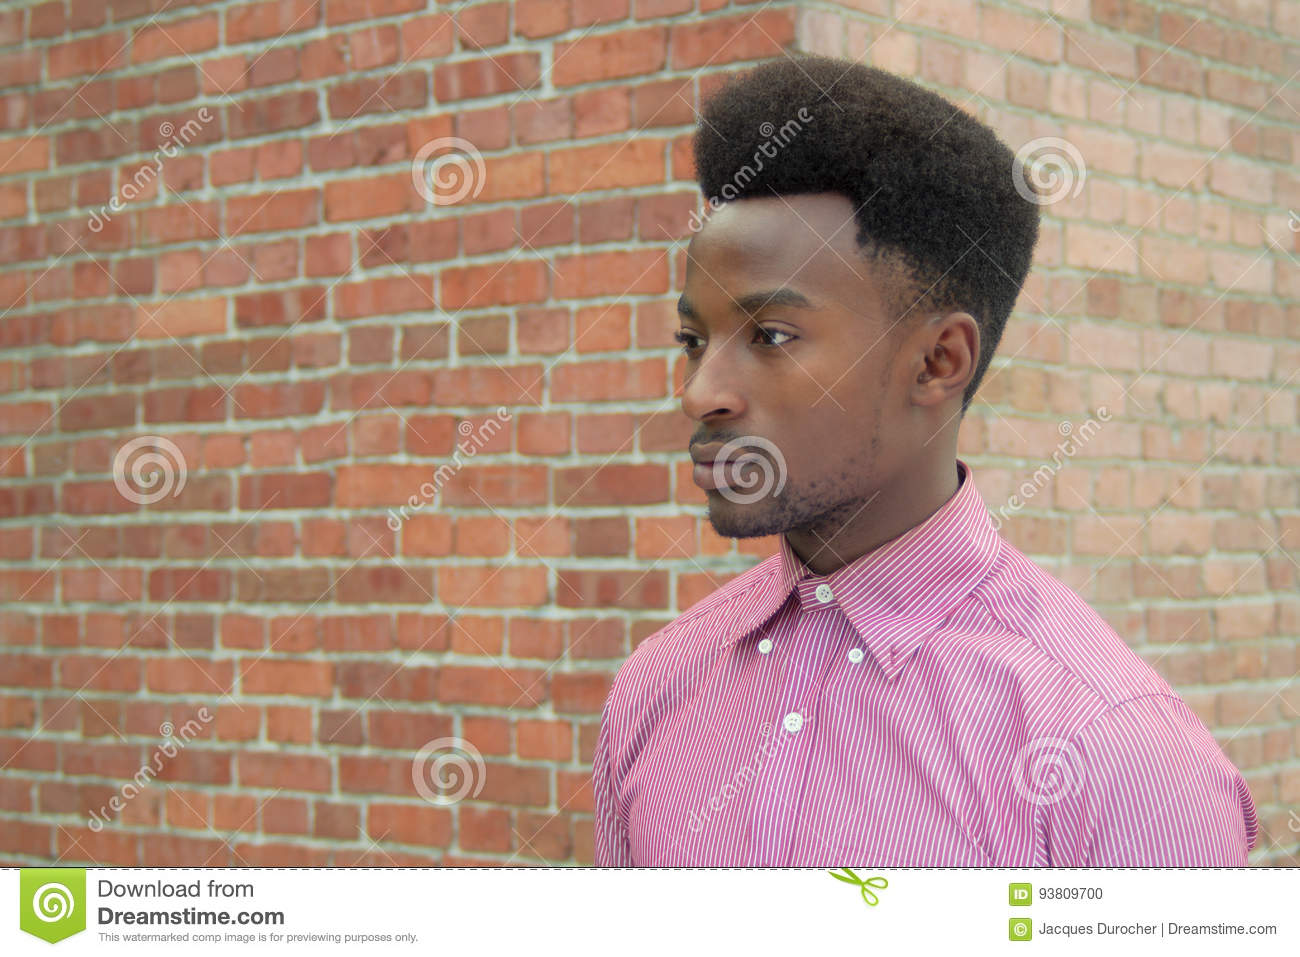 bd3b2b99 Man portrait young african guy urban portrait brick wall and pink shirt.  More similar stock images